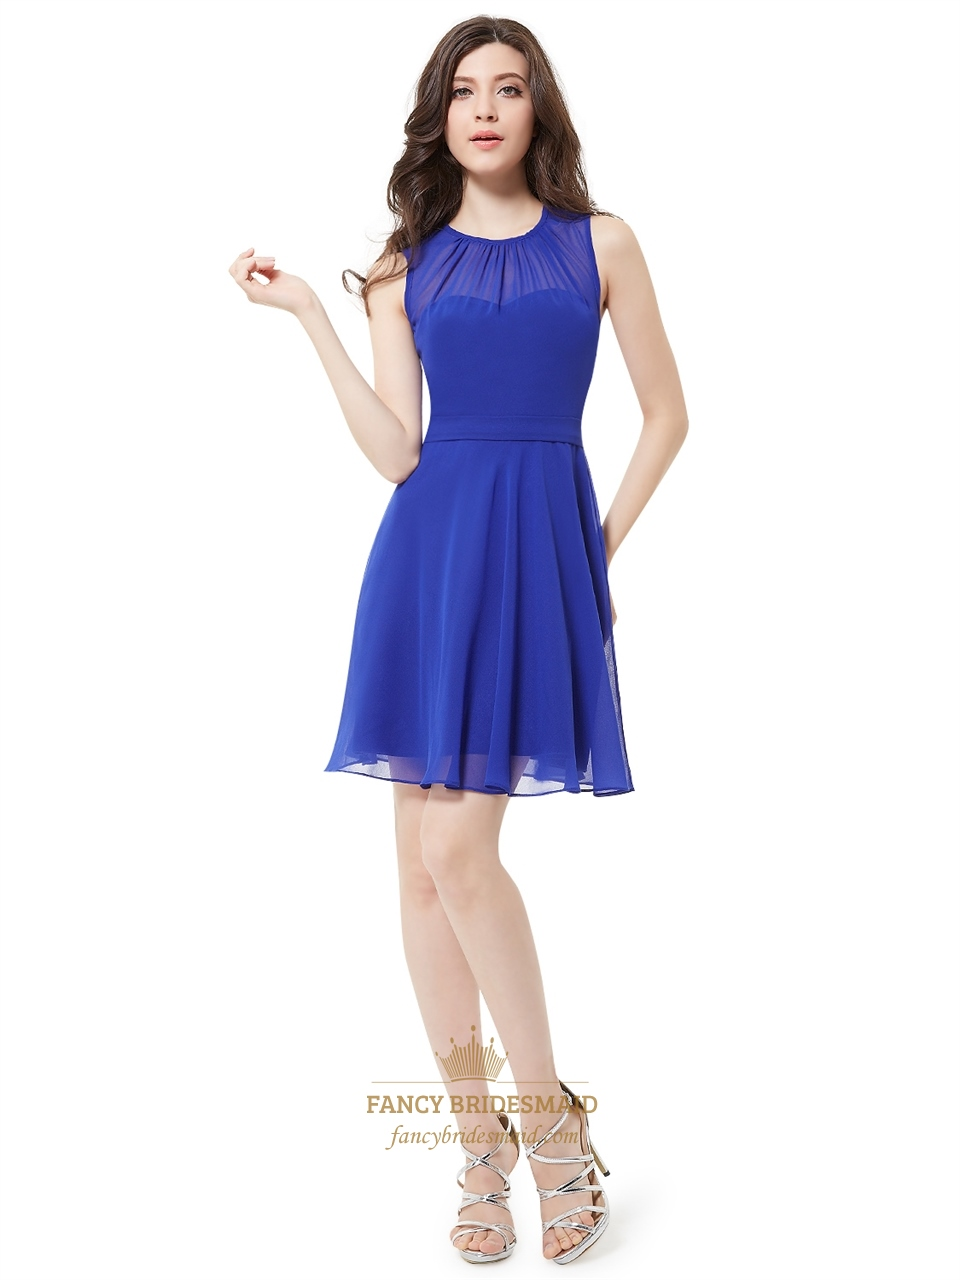 Royal Blue Short Dress  Fancy Bridesmaid Dresses